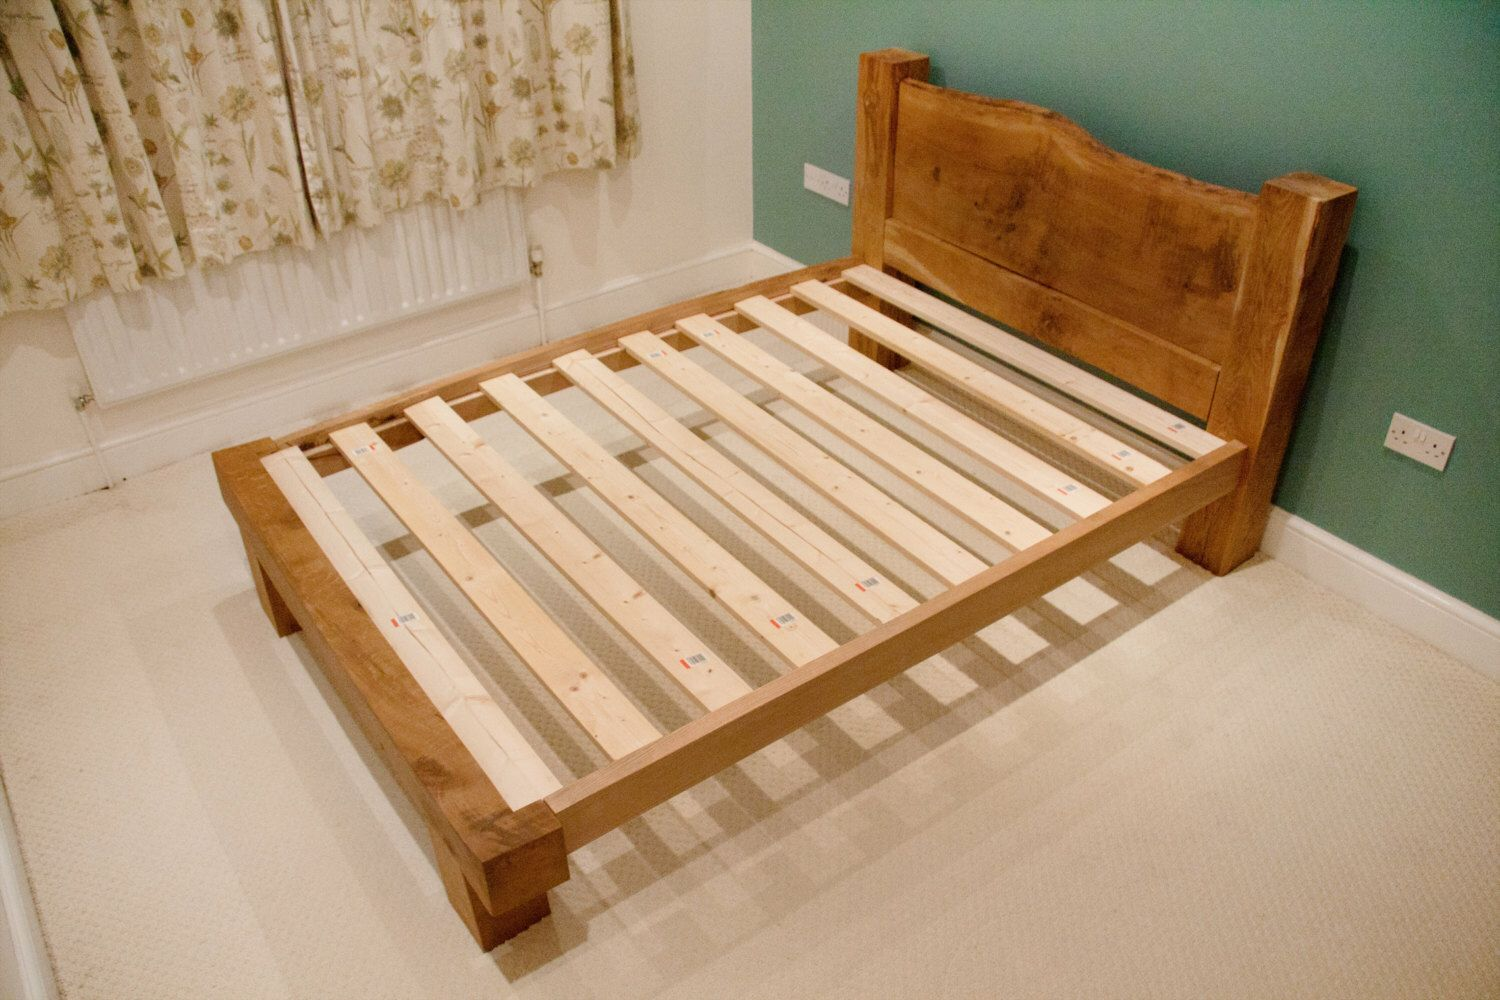 Oak Bed Frame - Oak Beams - Solid Oak - Framing Beams - Pegged ...